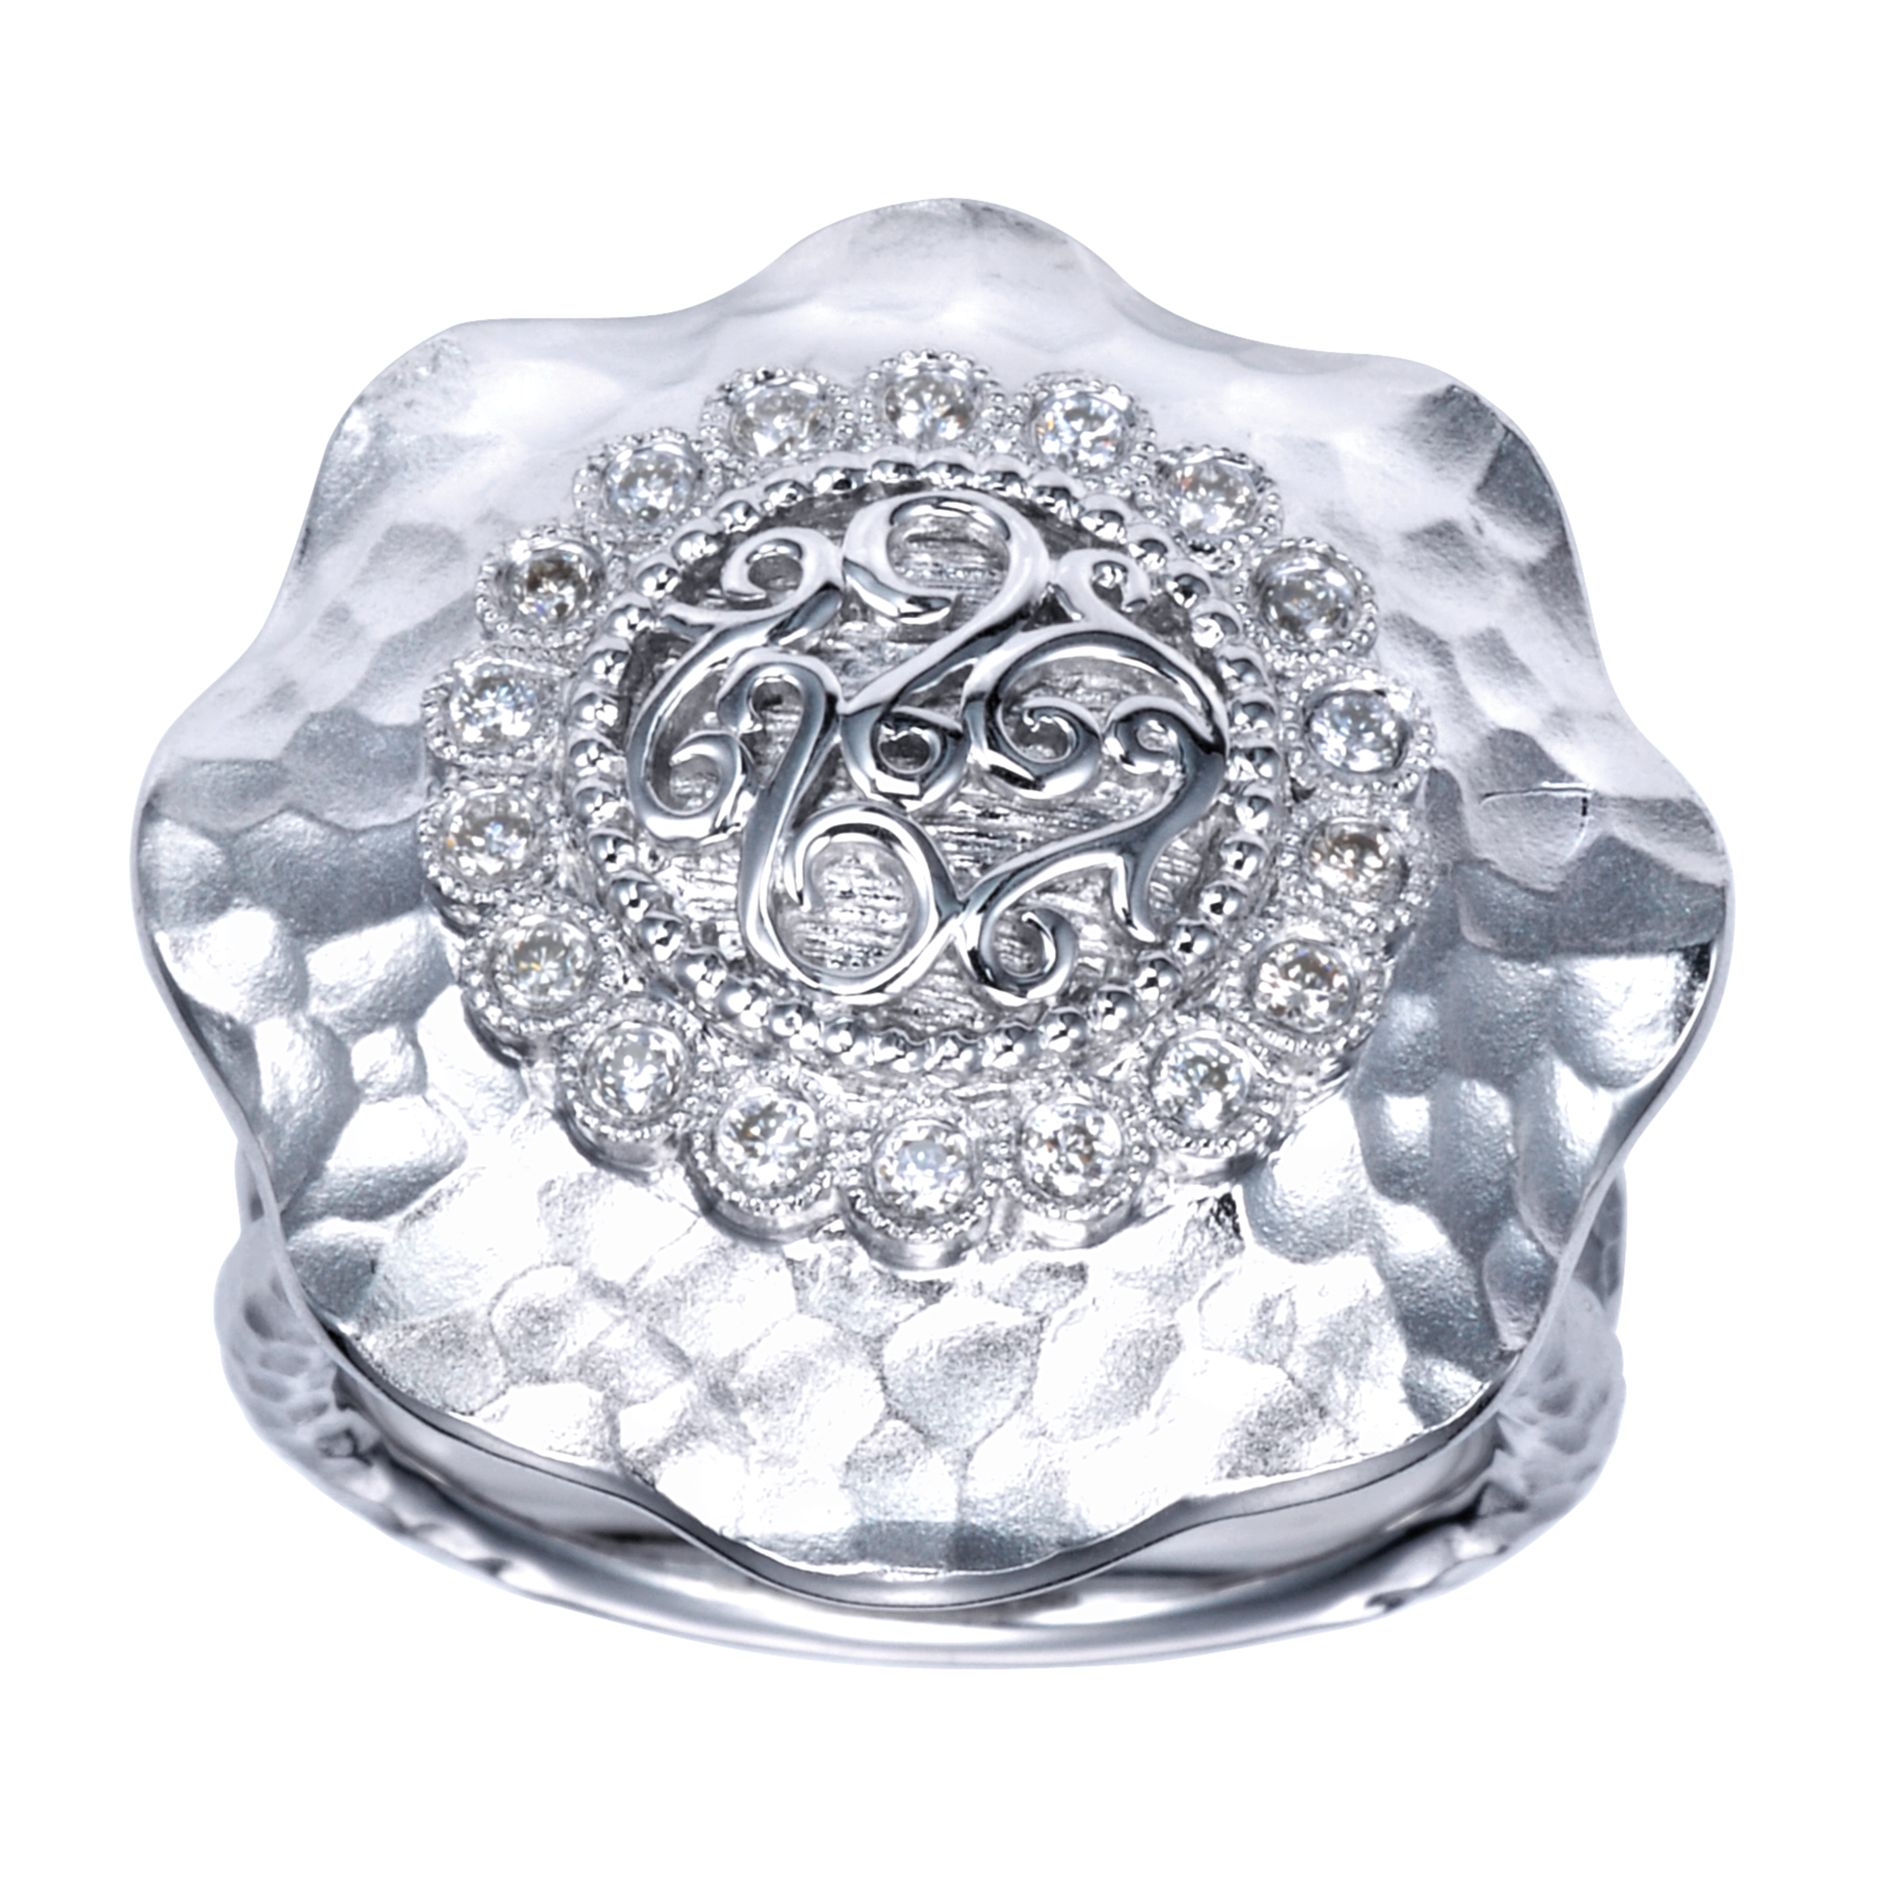 Rings - SILVER FASHION DIAMOND LADIES RING - image #5